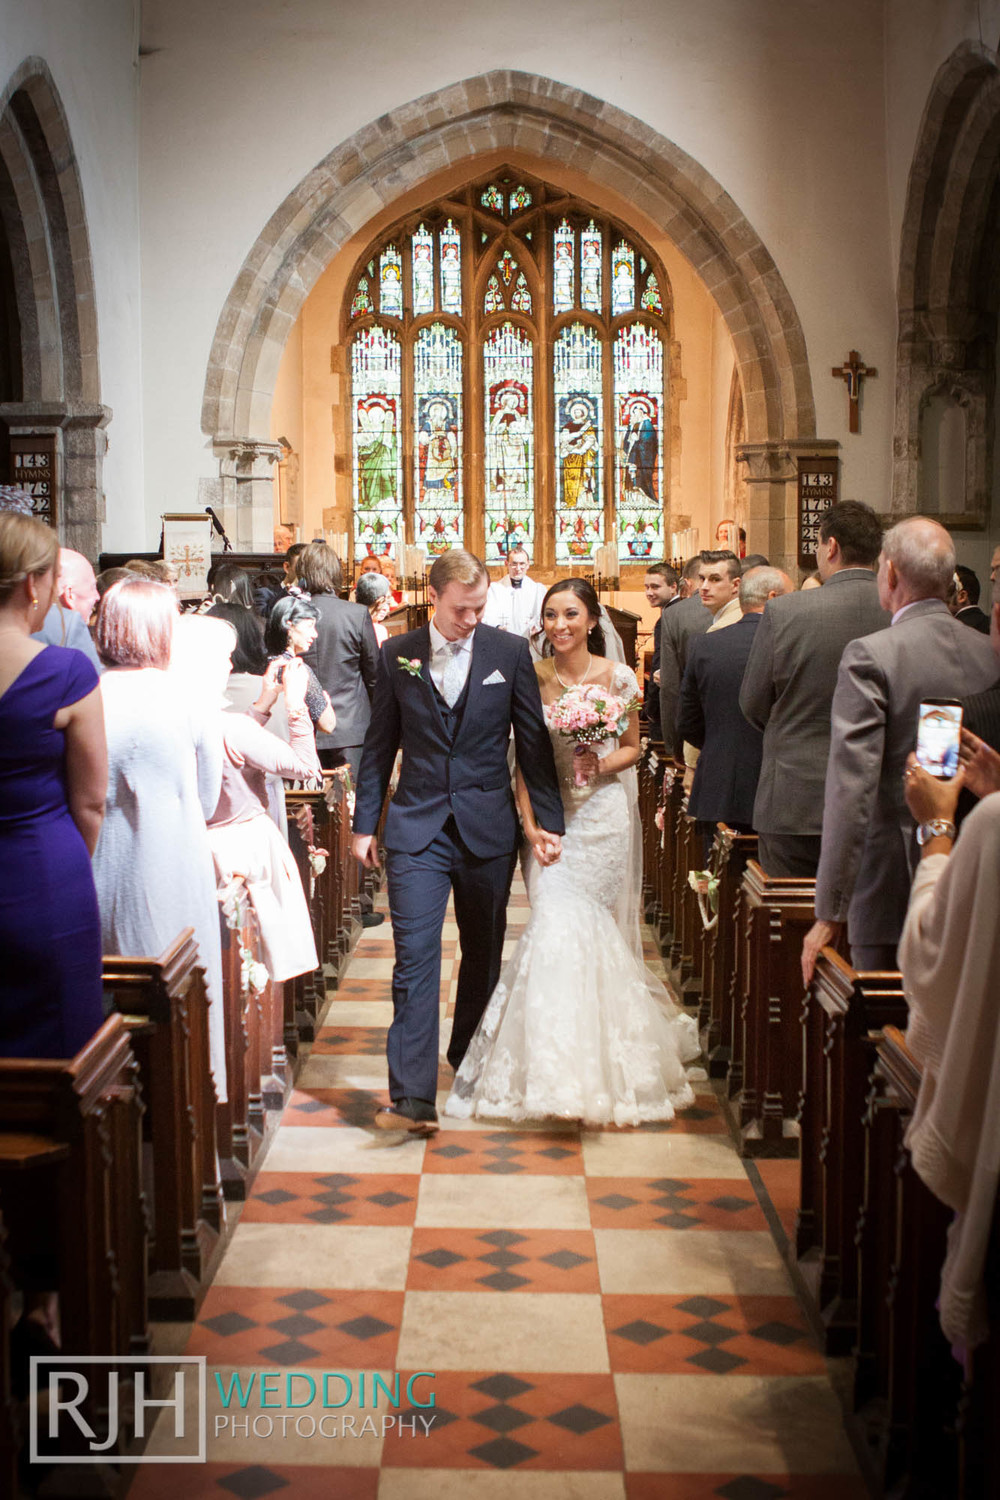 RJH Wedding Photography_Tankersley Manor Wedding_25.jpg